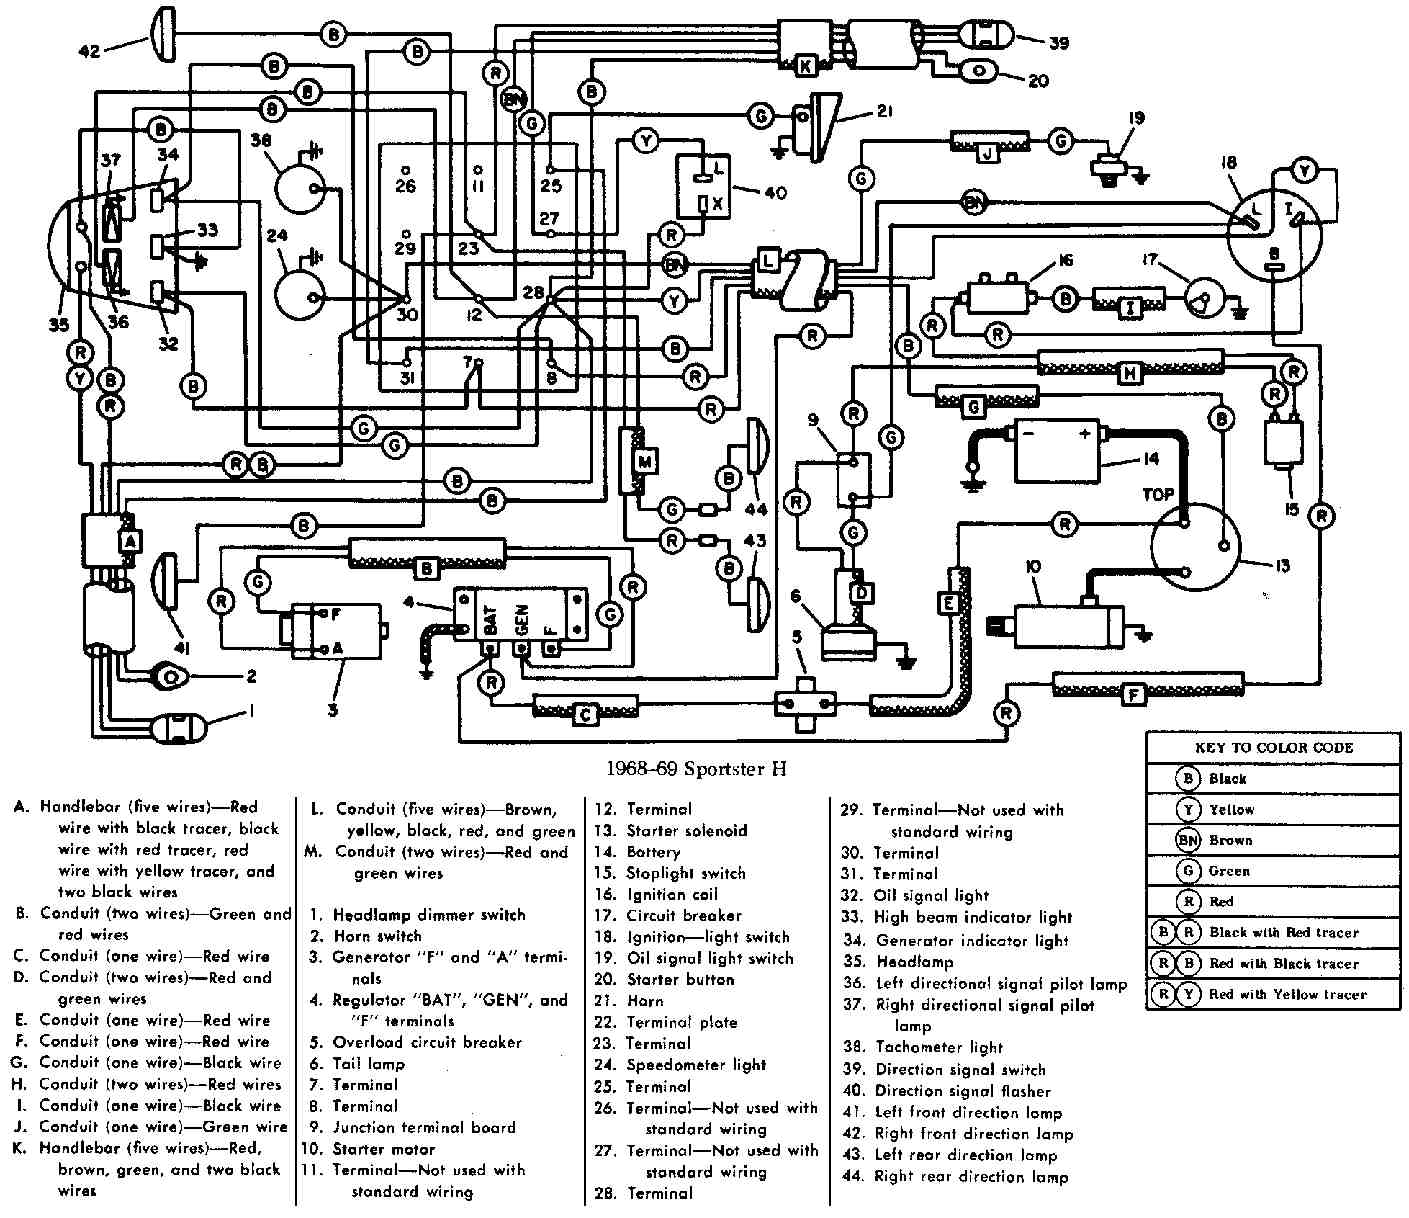 1970 harley flh wiring diagram diy enthusiasts wiring diagrams u2022 rh broadwaycomputers us 1977 harley flh wiring diagram 1972 harley flh wiring diagram